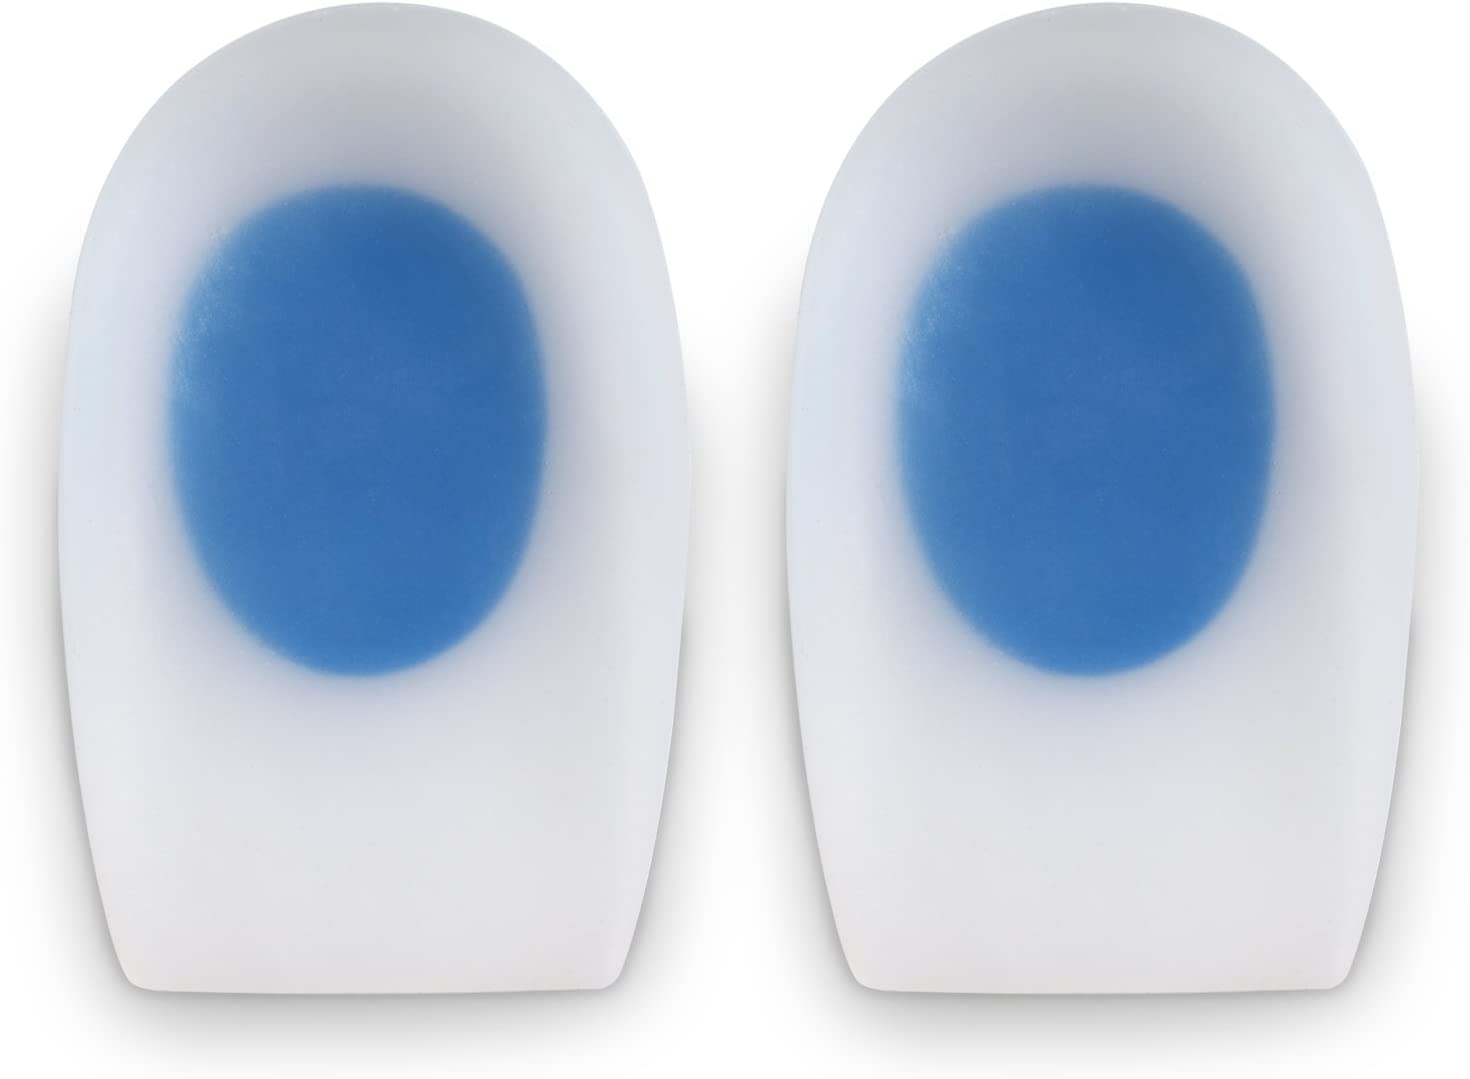 Soles Silicone Heel Cups (Pair) Soft Cushions to Help Relieve Foot Pain, Bone Spurs, Plantar Fasciitis - Hypoallergenic, Stain and Odor Resistant - Unisex - XL / 42-43-44: Health & Personal Care